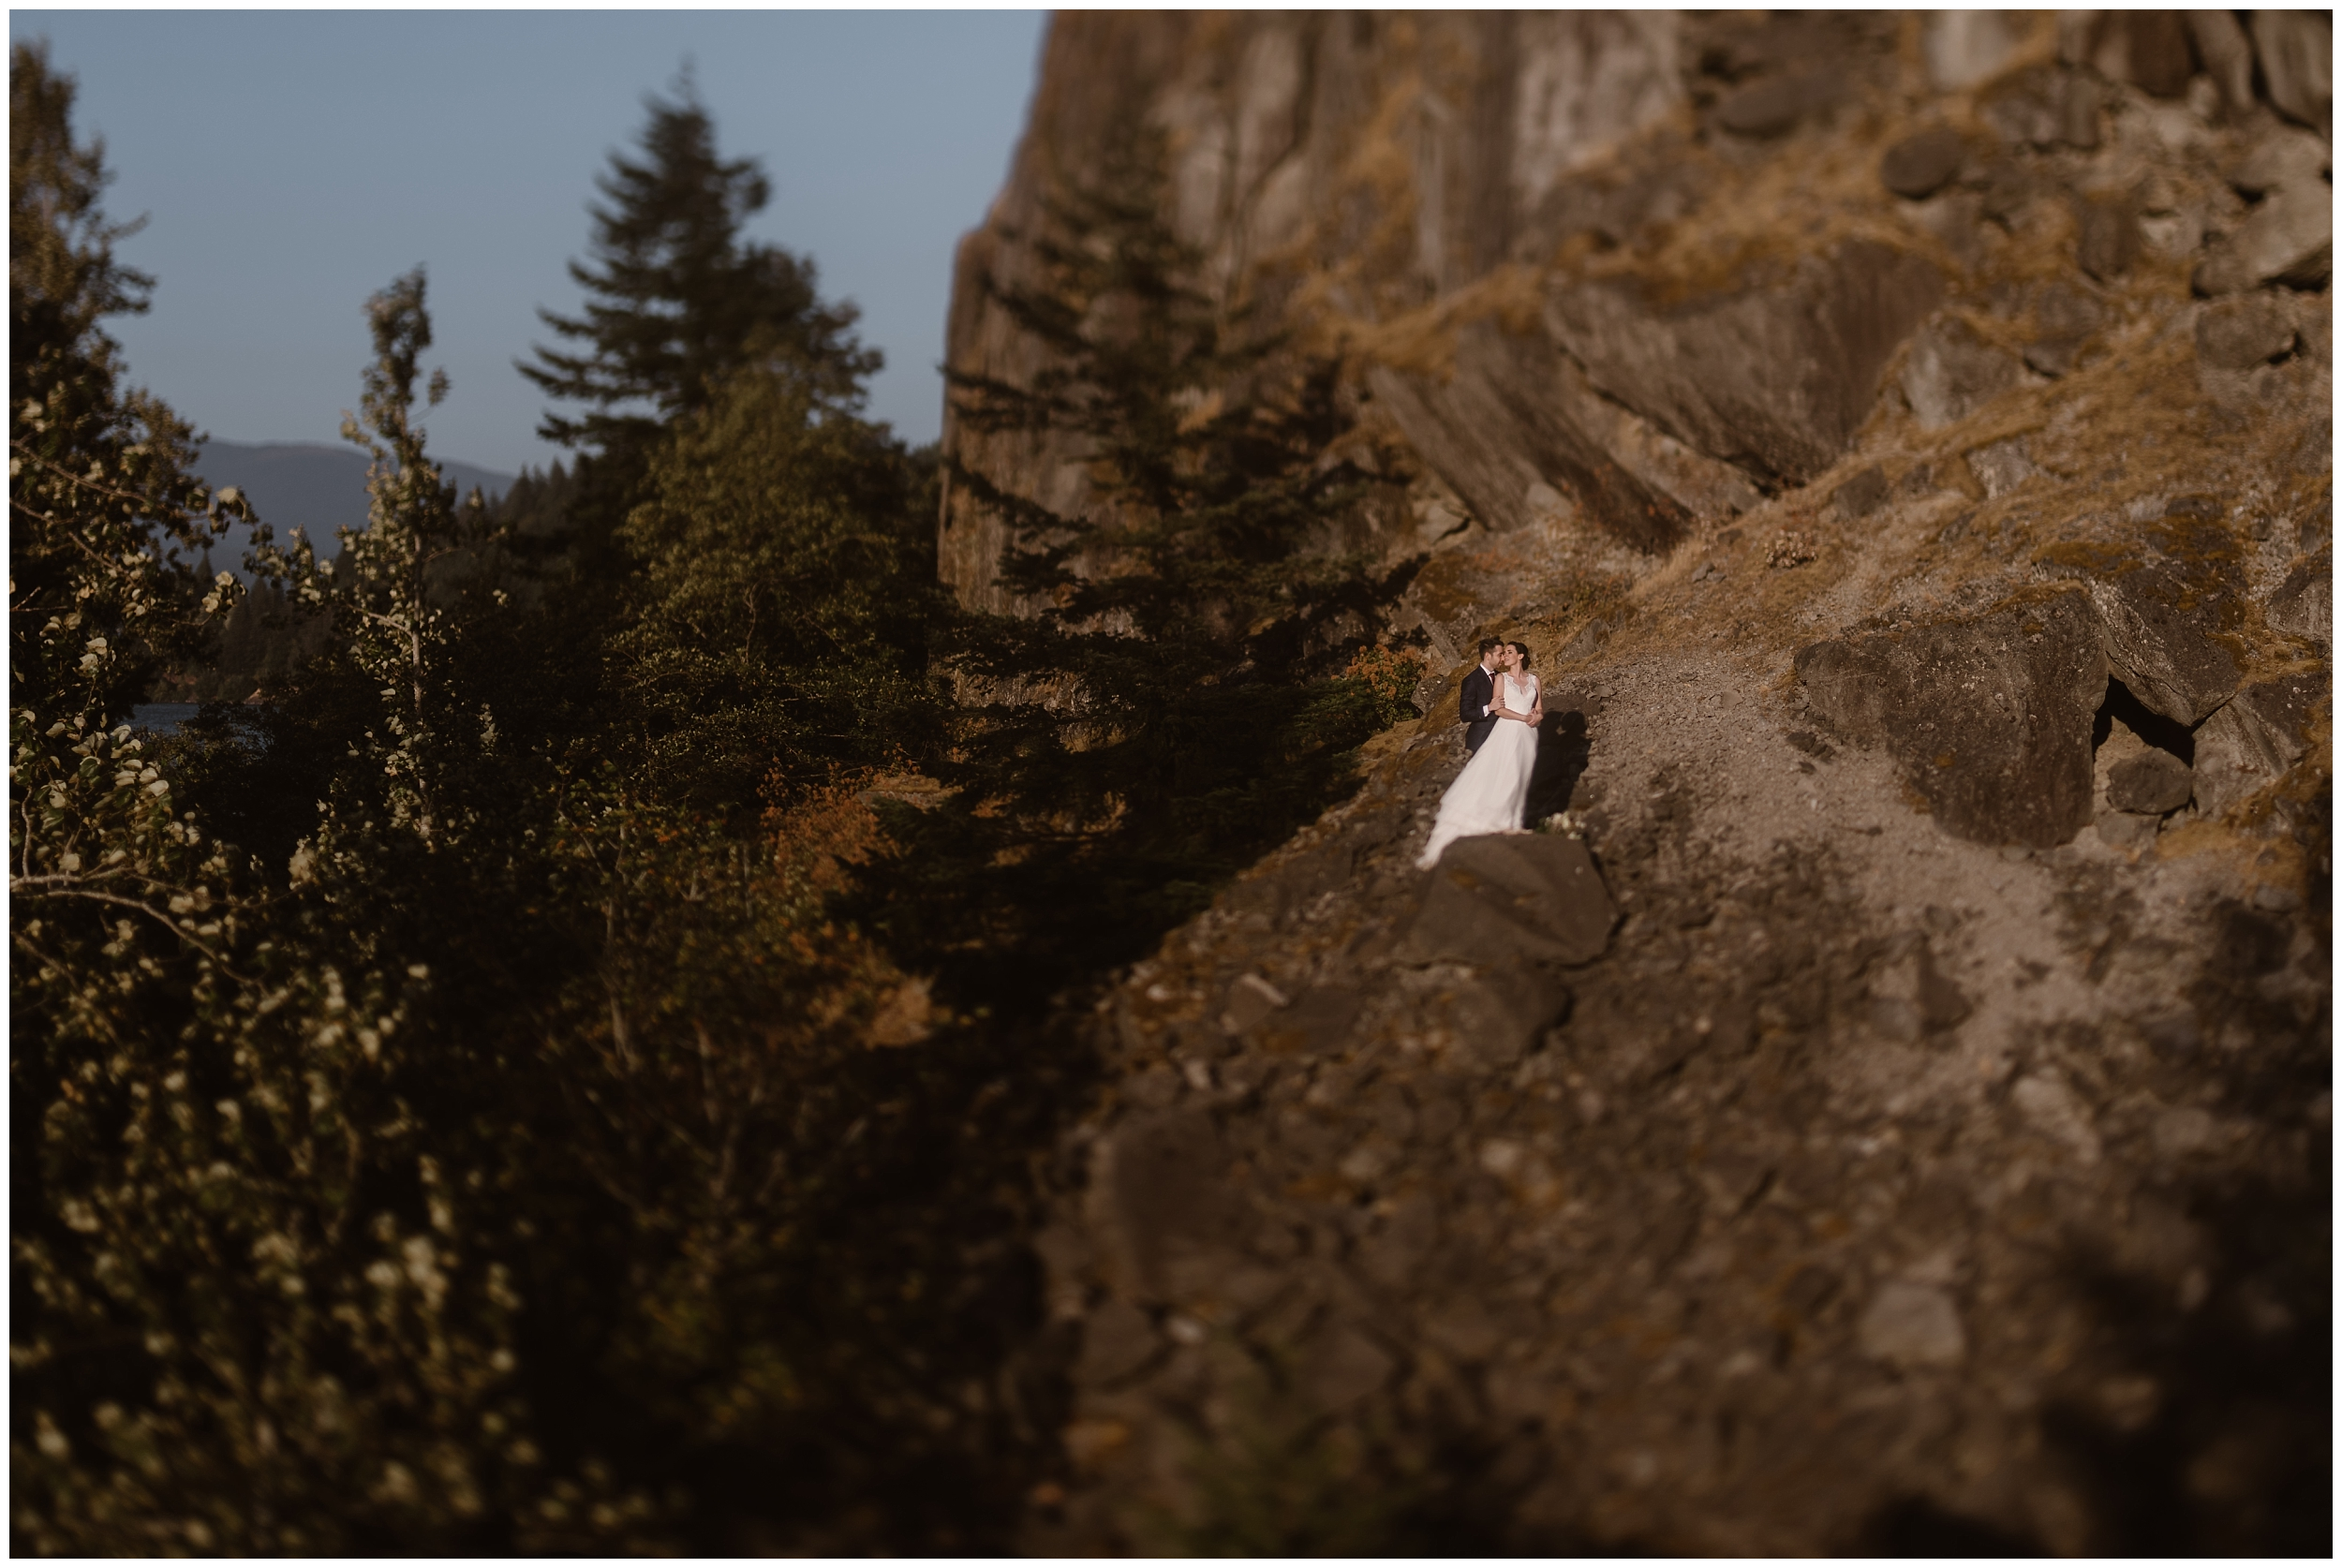 Lauryn and David embrace on the side of an enormous, golden rock in the Columbia River Gorge for some of their elopement photos. Exploring after their elopement ceremony was one of their best elopement ideas, especially for additional elopement photos.